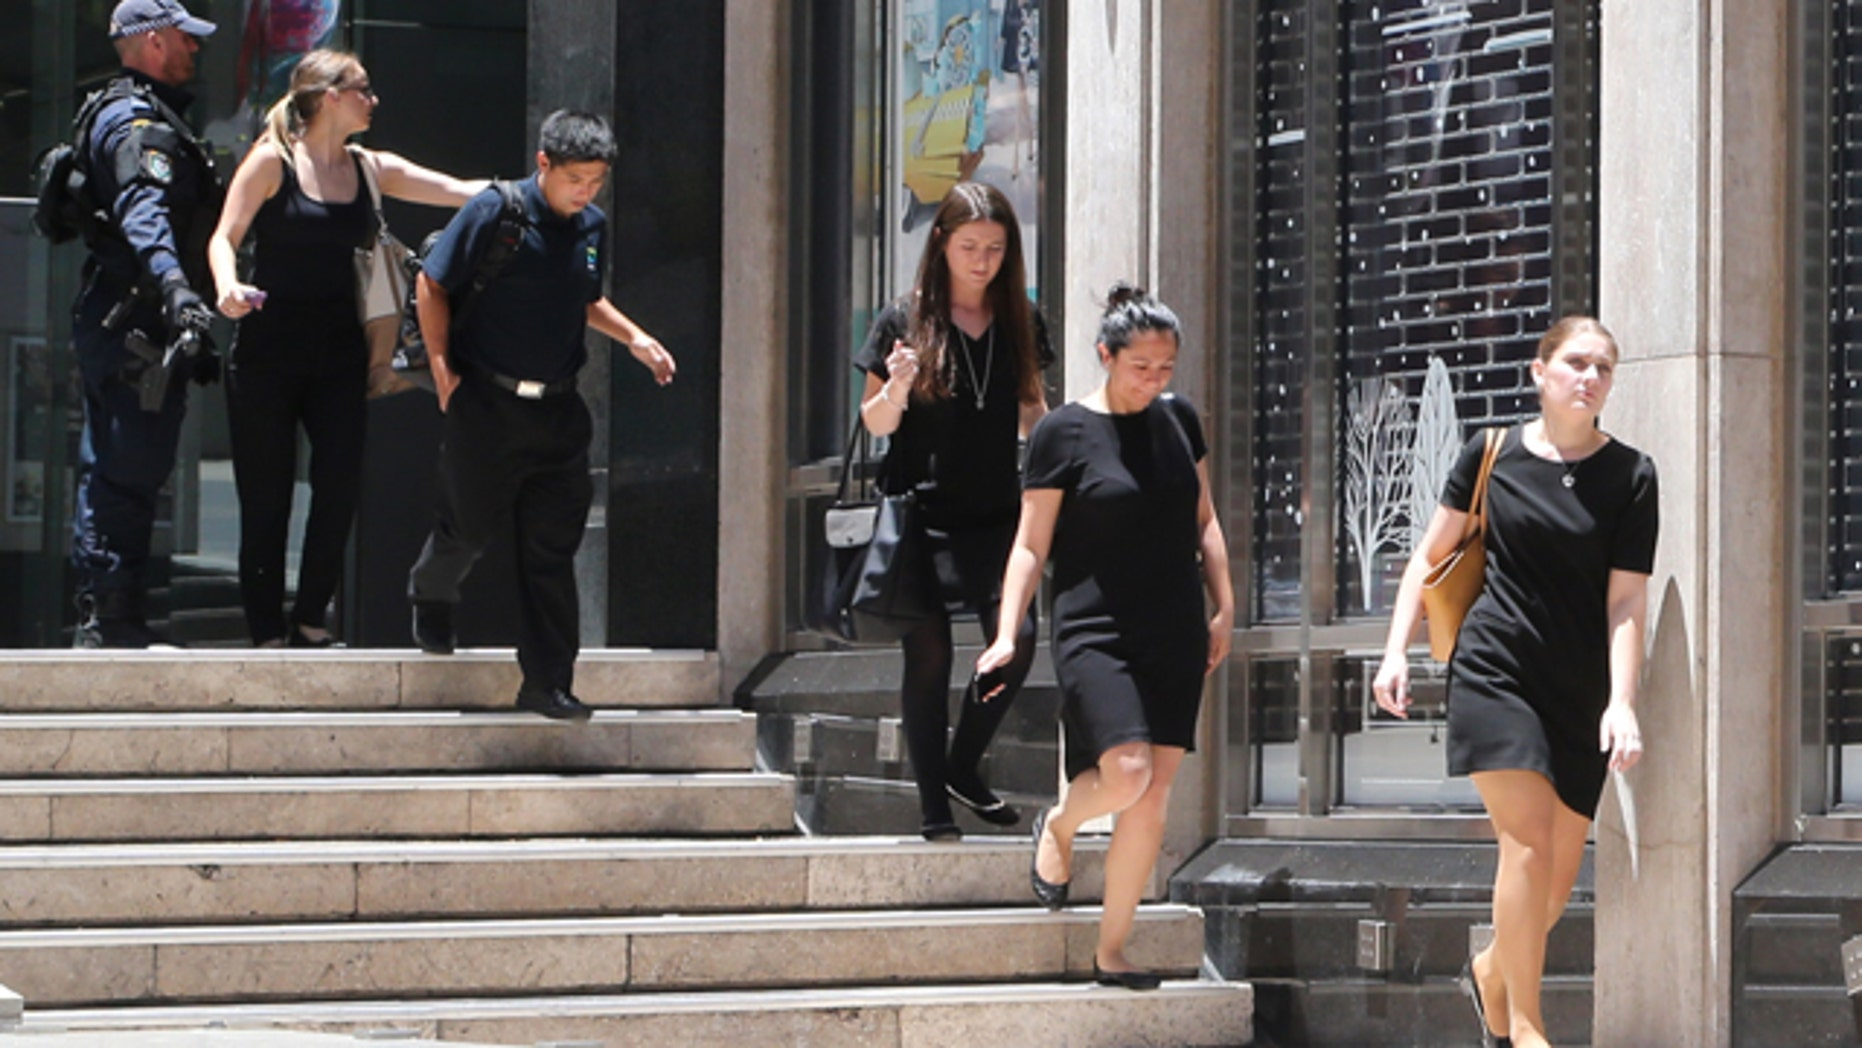 December 15, 2014: Police evacuate people from an office building close to a cafe under siege at Martin Place in the central business district of Sydney, Australia. (AP Photo/Rob Griffith)